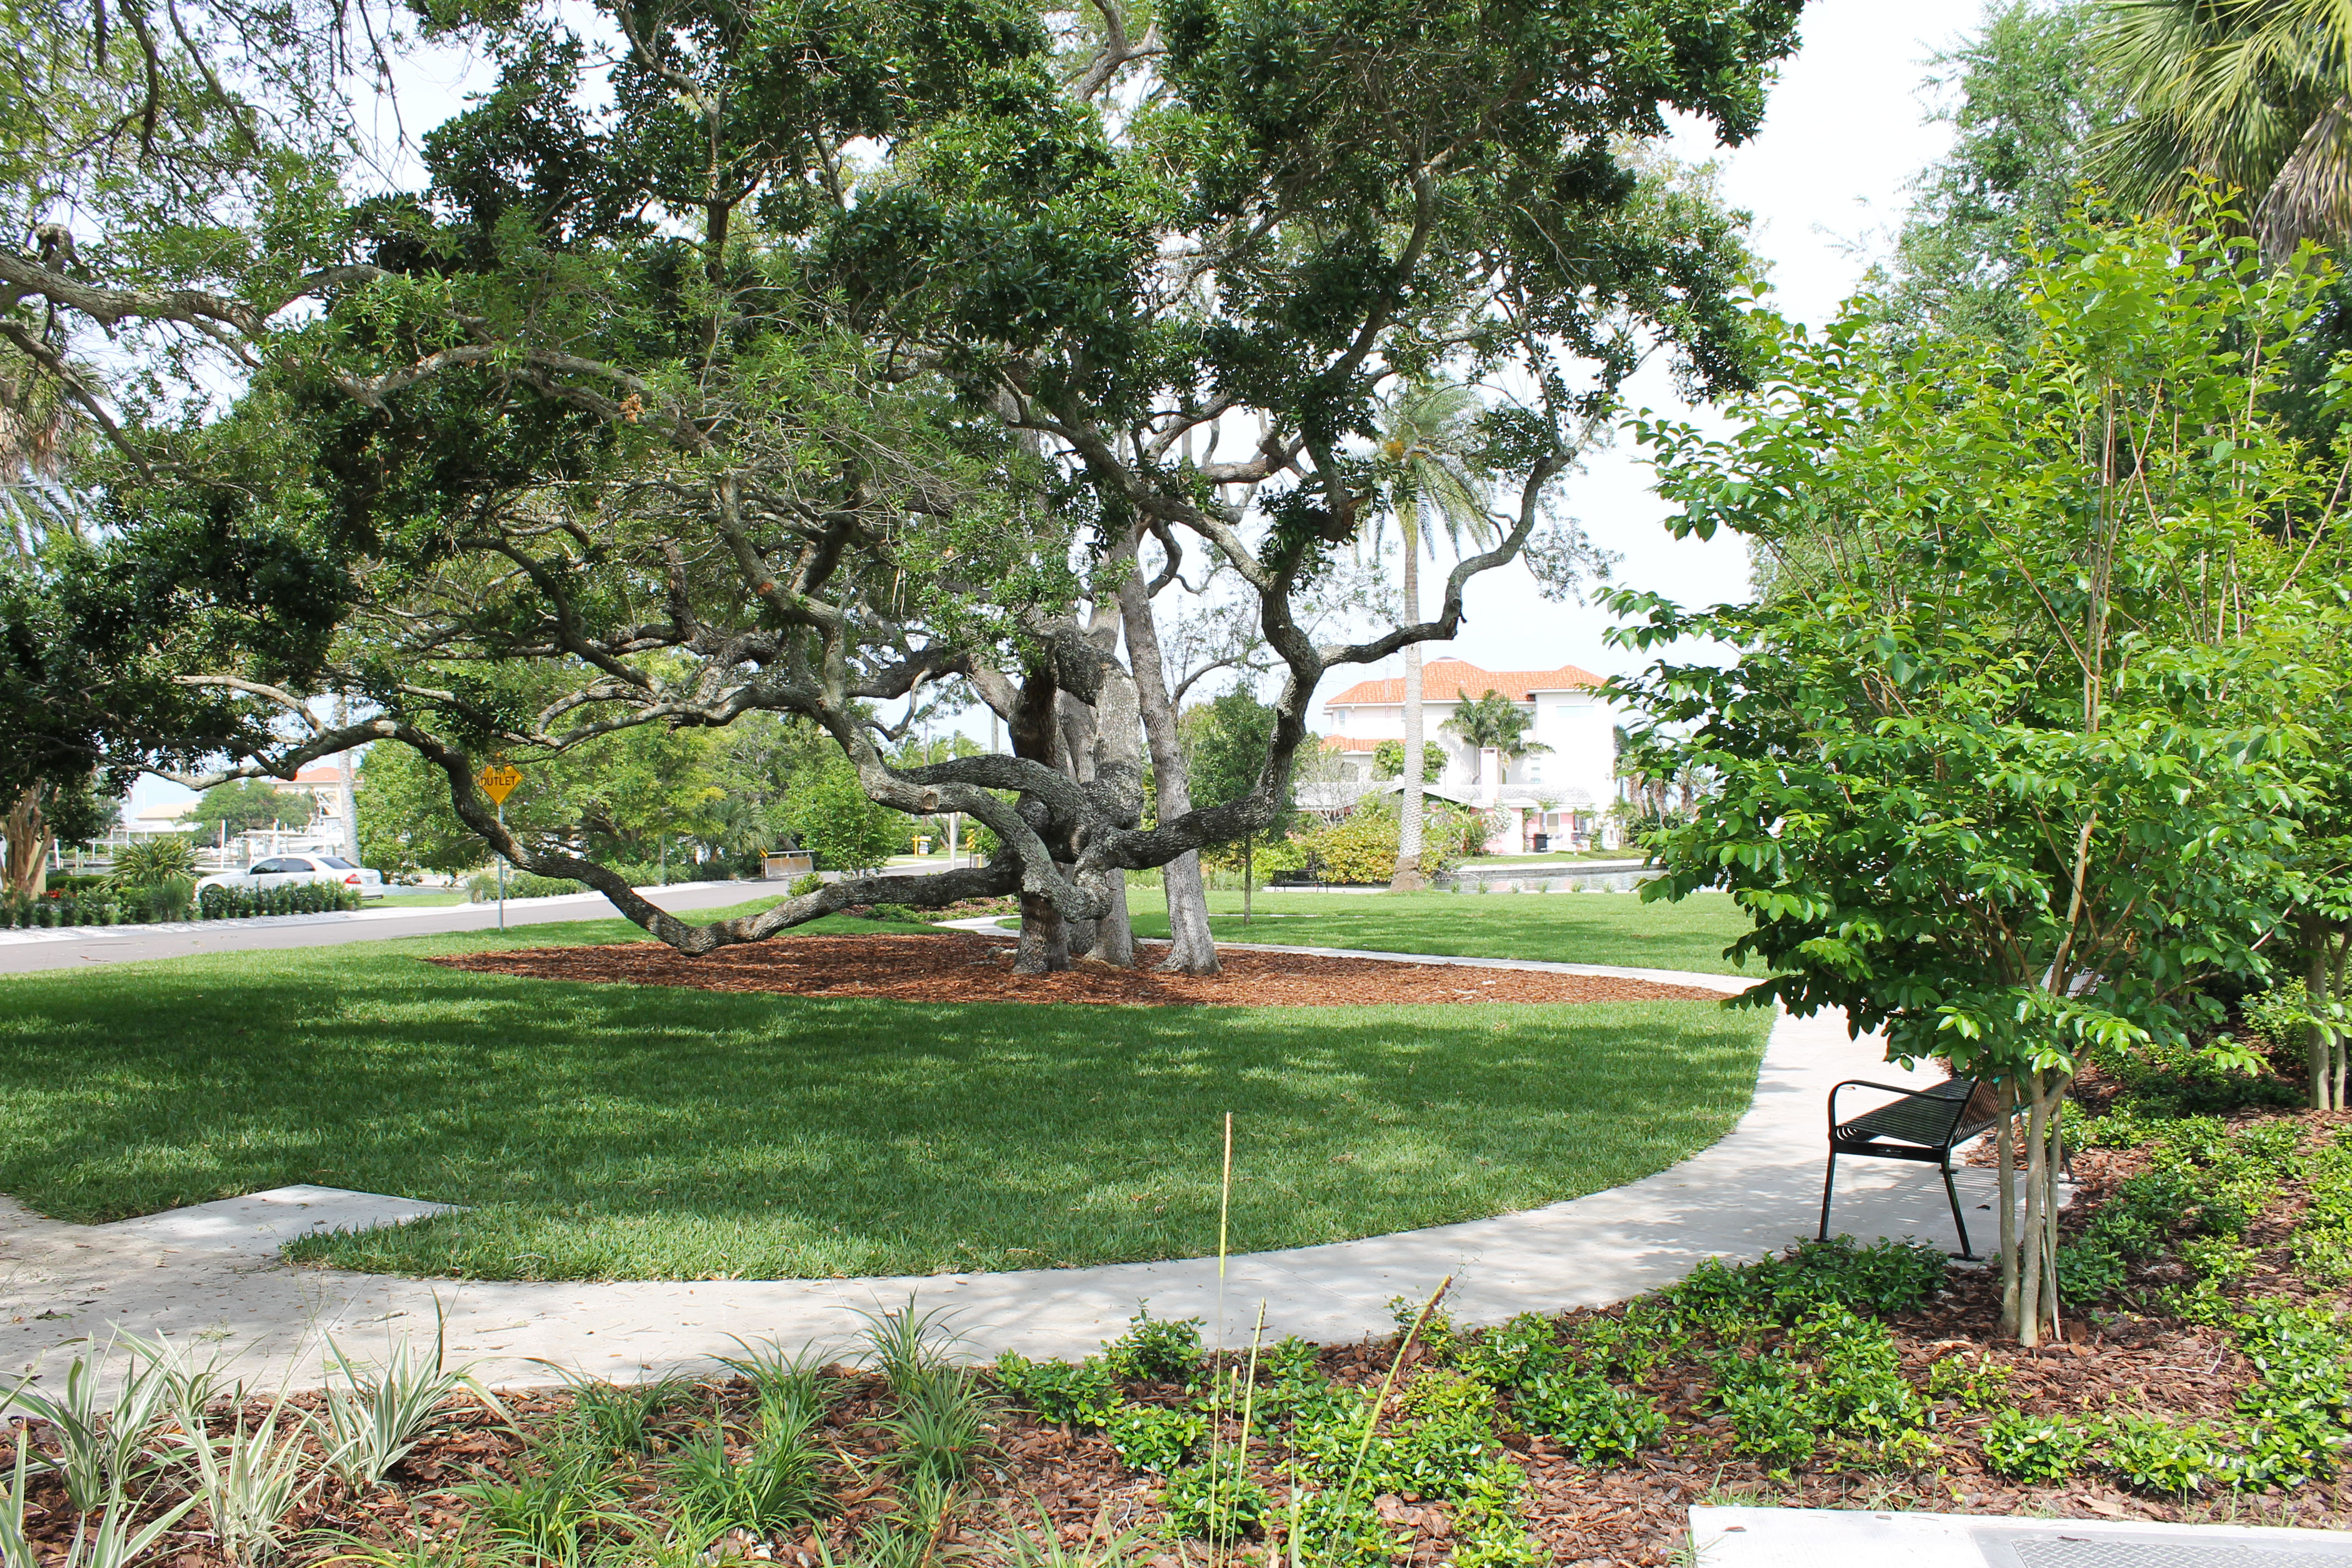 A view of Winston Park that includes grass, flower beds, a sidewalk, and a large oak tree